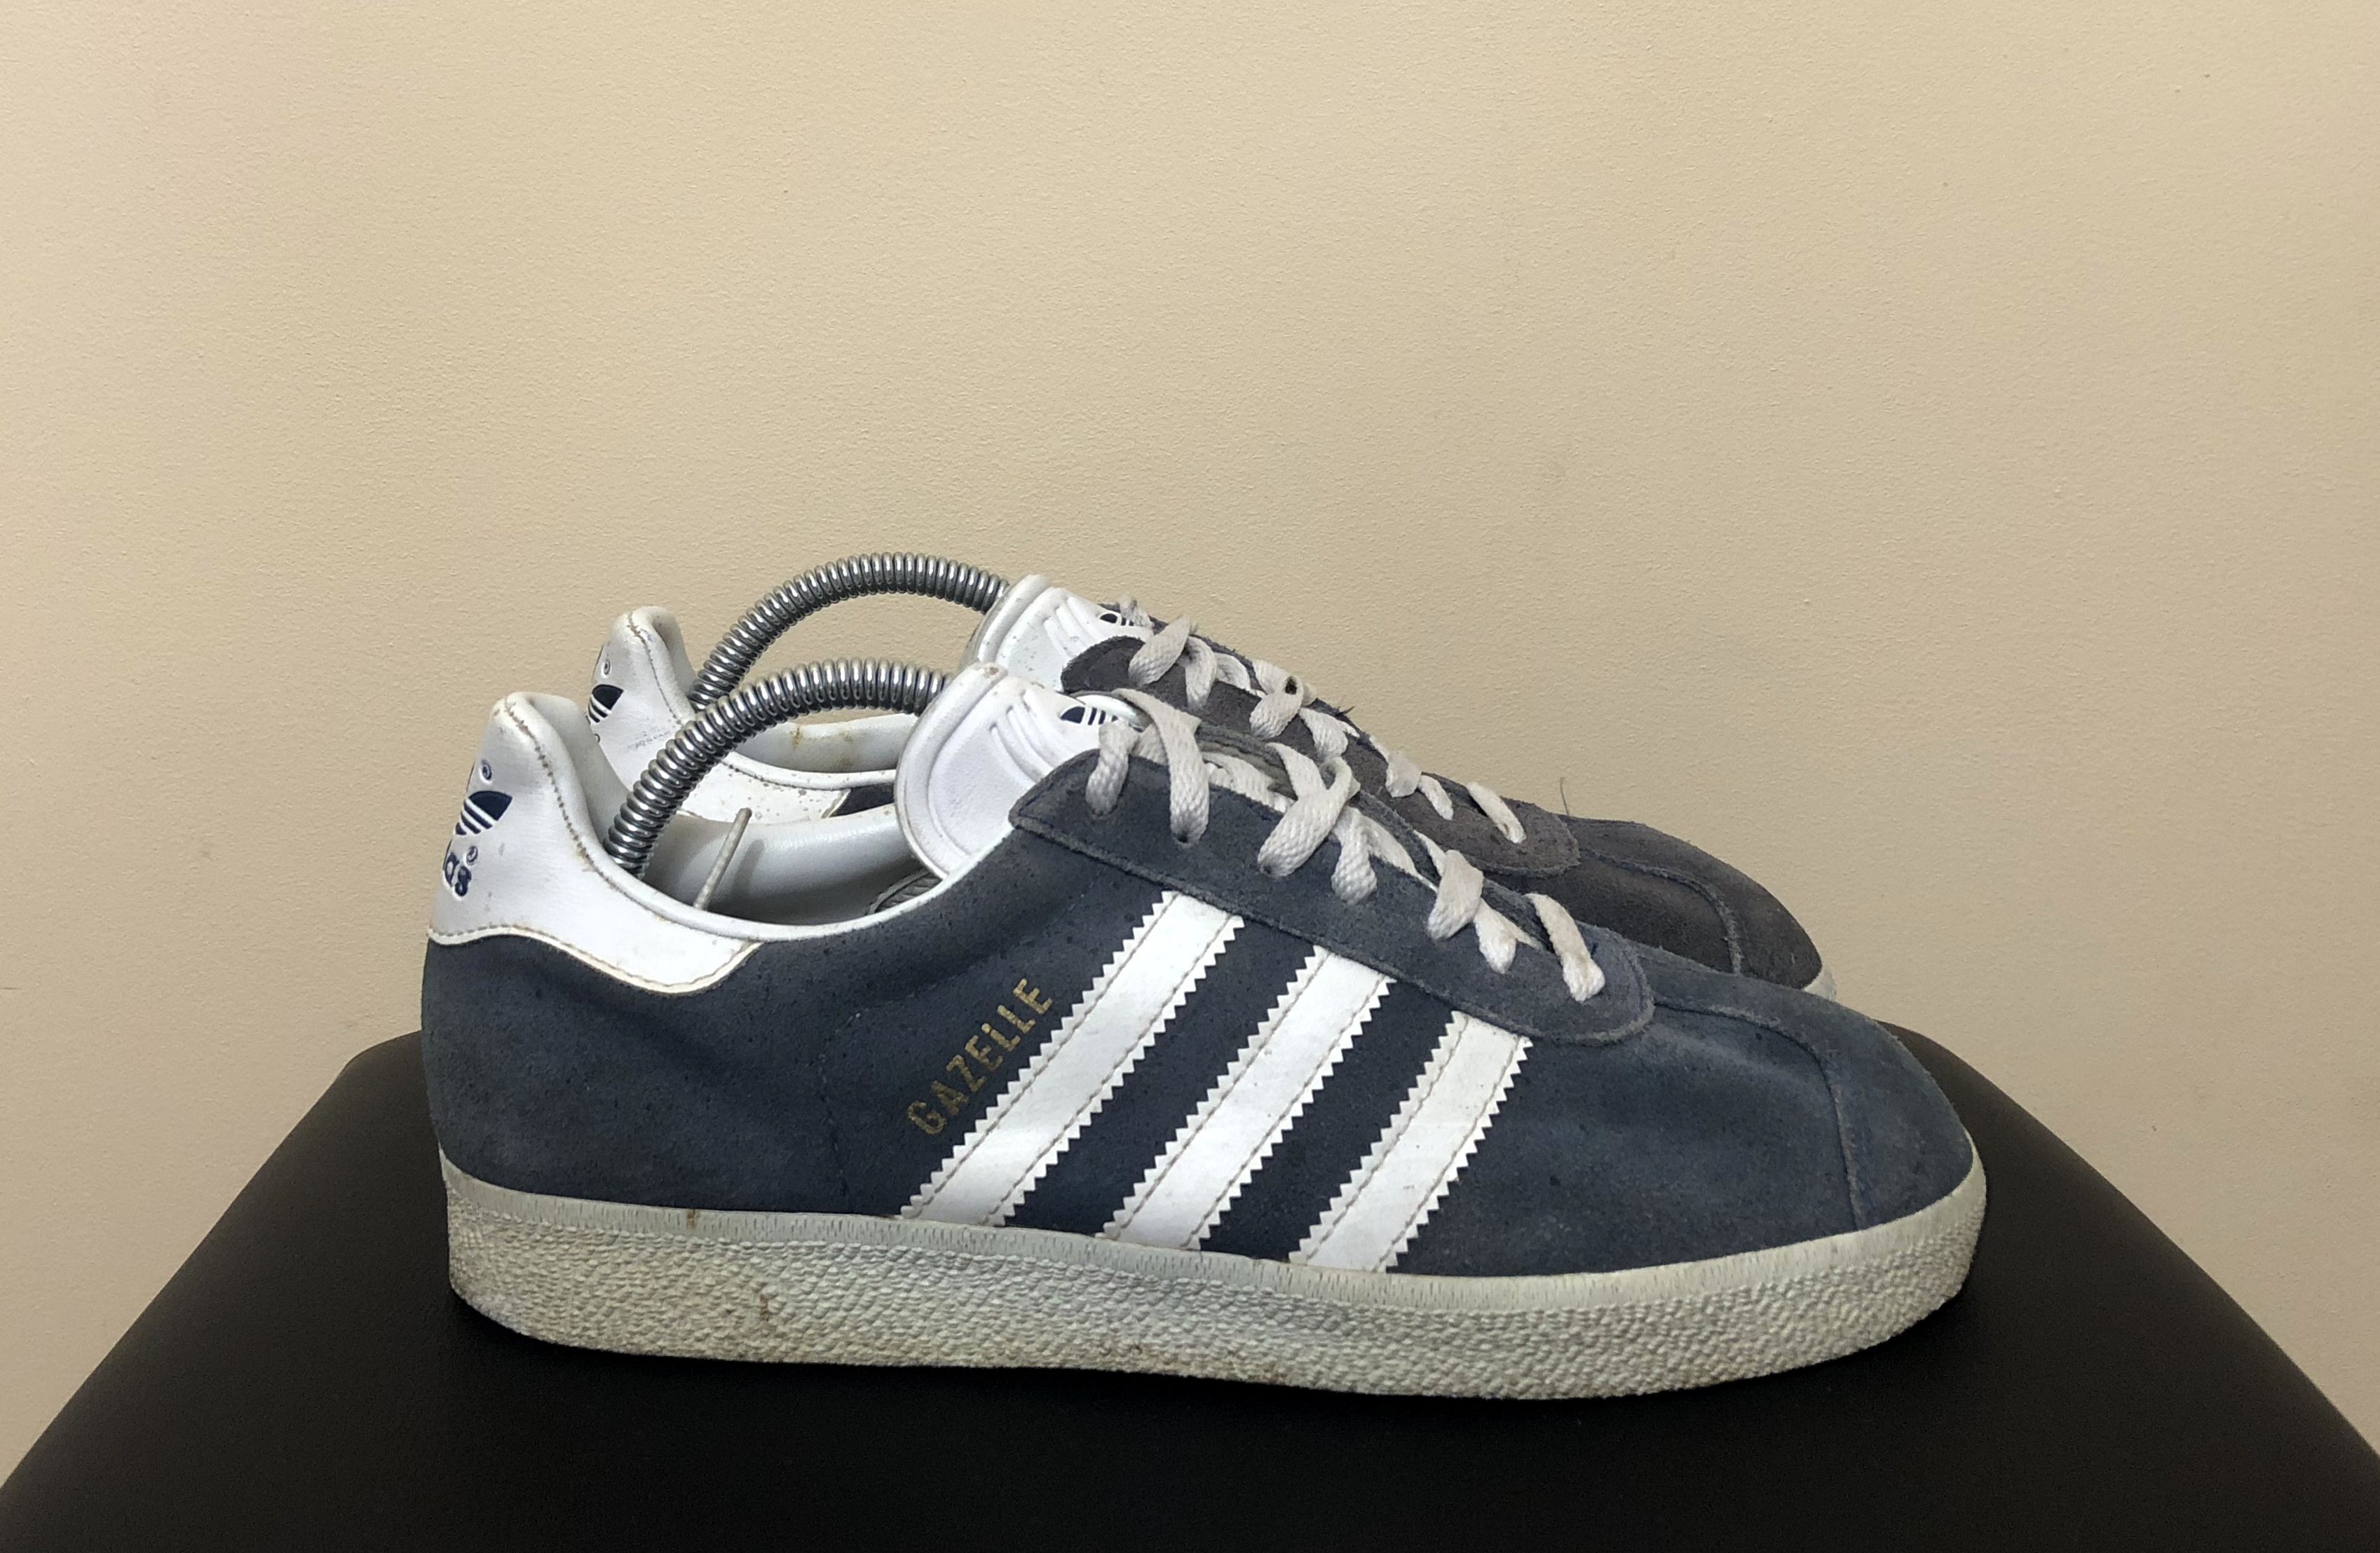 Vintage 1995 Adidas Gazelle Suede Shoes Size US 7,5 UK 7 Rare Casual Art 034581